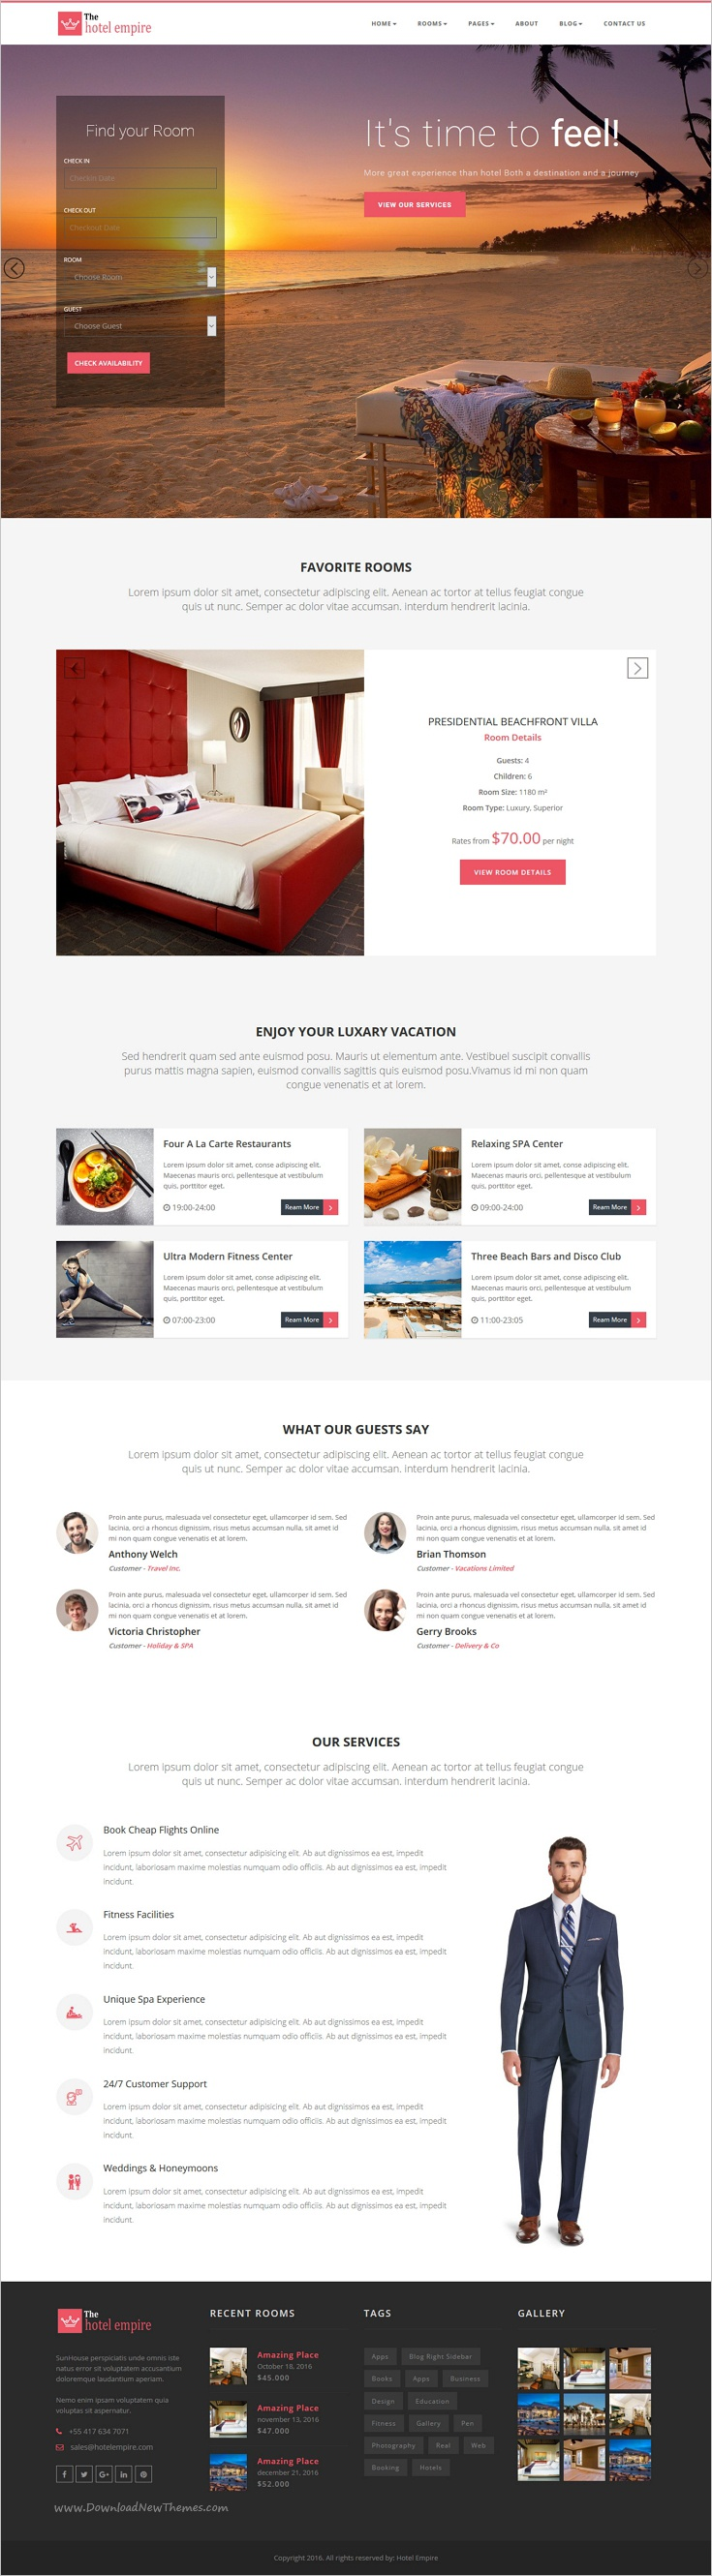 Hotel Empire - Hotel Reservation HTML Template | Empire Hotel and ...